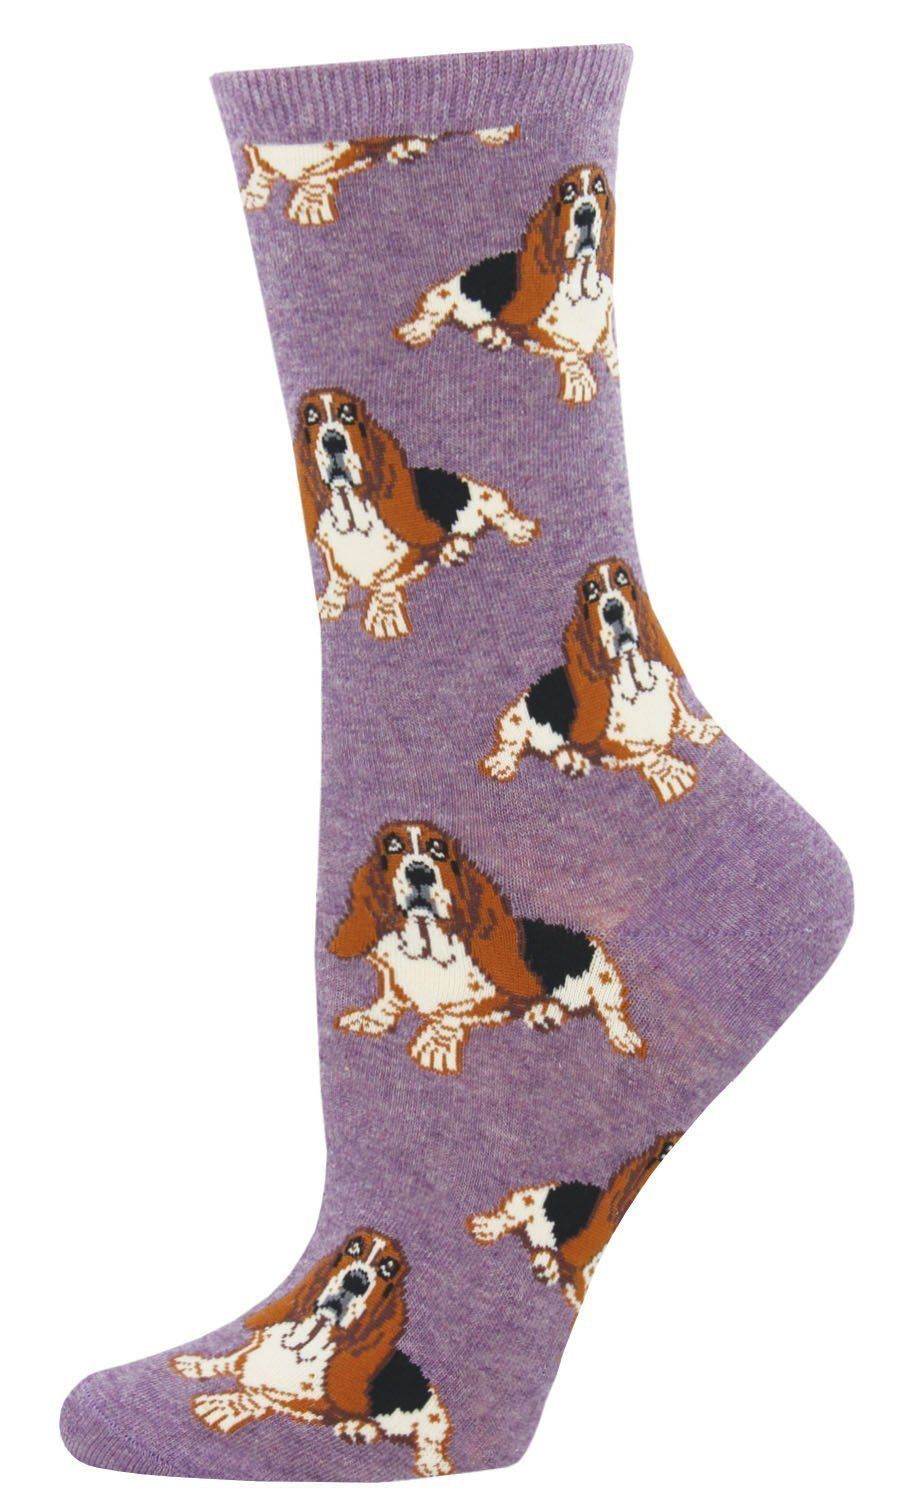 Socksmith - Nothing But A Hound Dog Crew Socks | Women's - Knock Your Socks Off